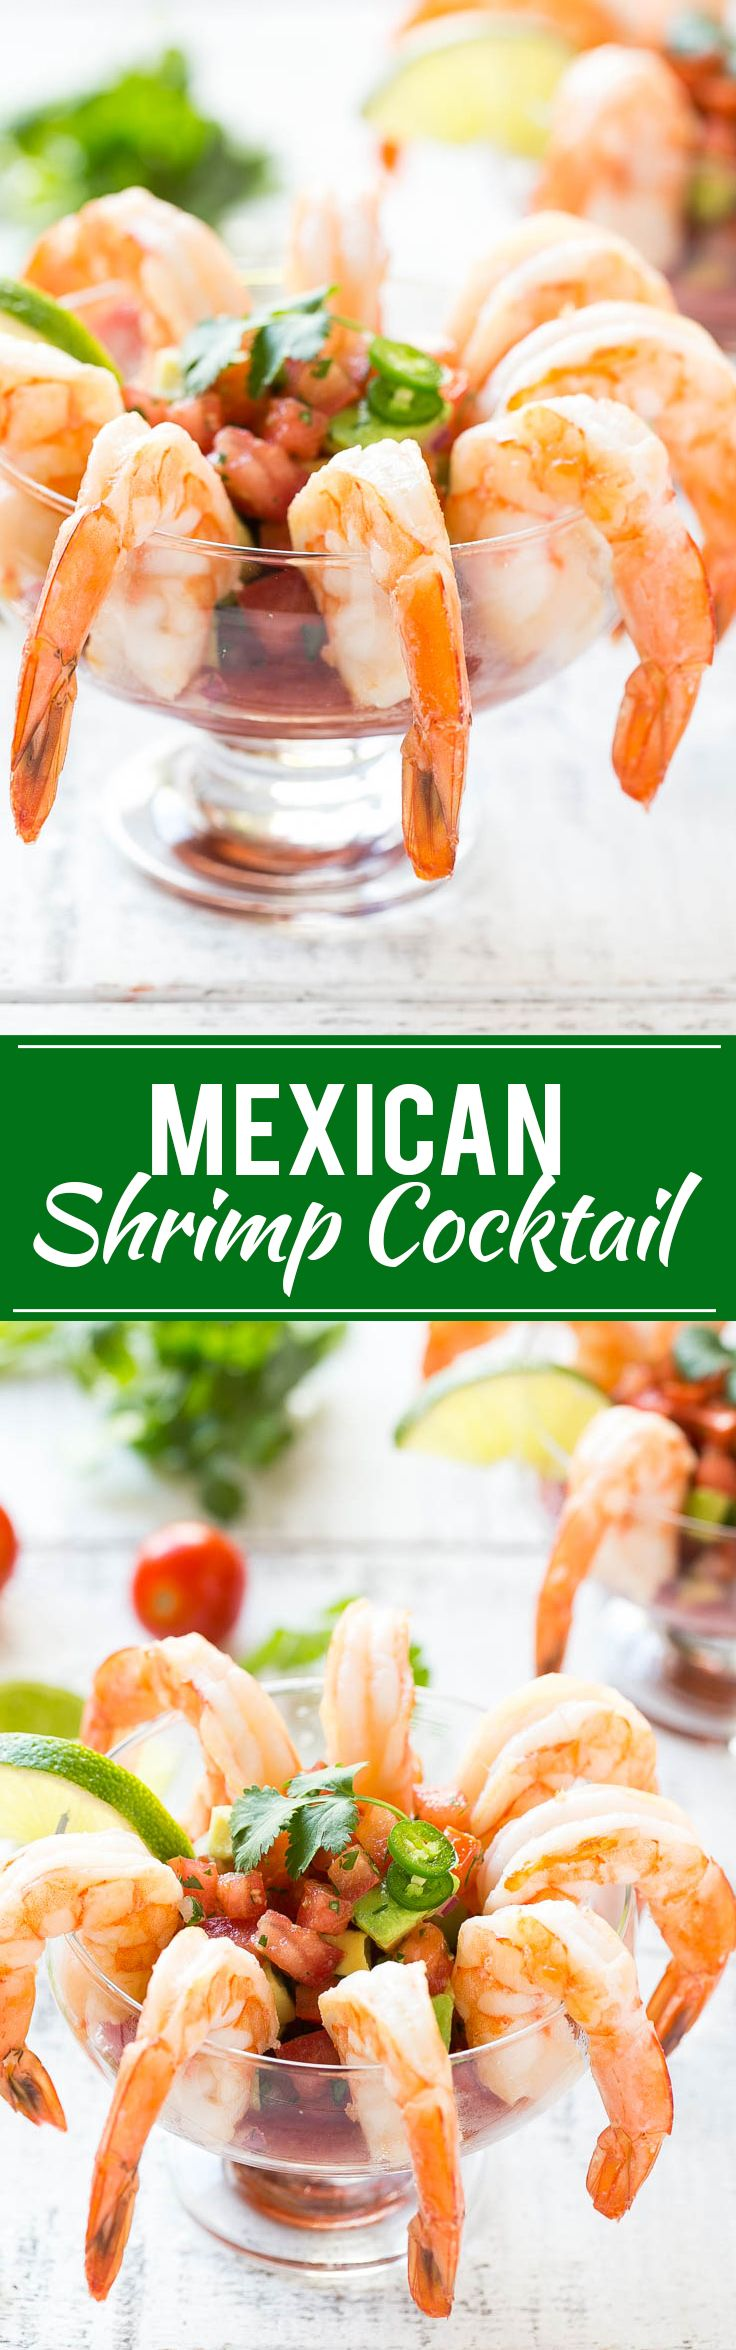 Mexican Shrimp Cocktail (coctel de camarones) - Fresh shrimp served with a zesty cocktail sauce and a refreshing tomato avocado relish.